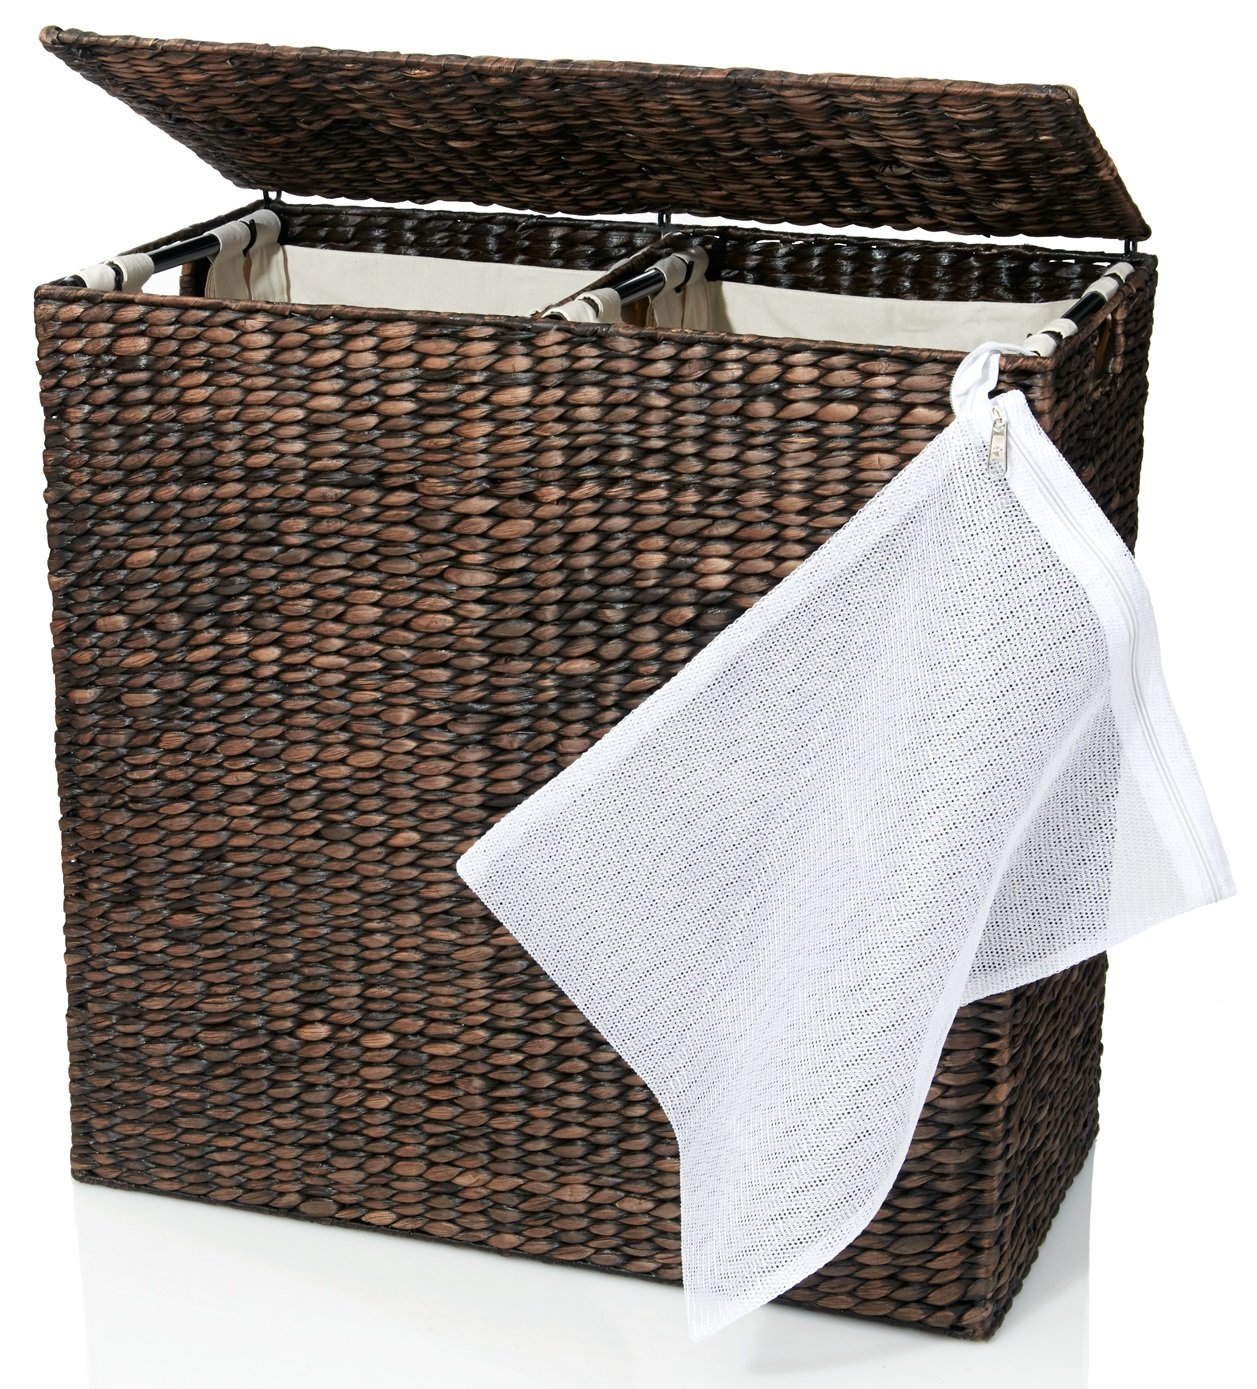 Designer Wicker Laundry Hamper with Divided Interior and Laundry Basket Bags - Espresso Water Hyacinth Hamper with Lid, Includes Two Removable Laundry Liners and Delicates Mesh Laundry Bag B&C Home Goods FBA_18